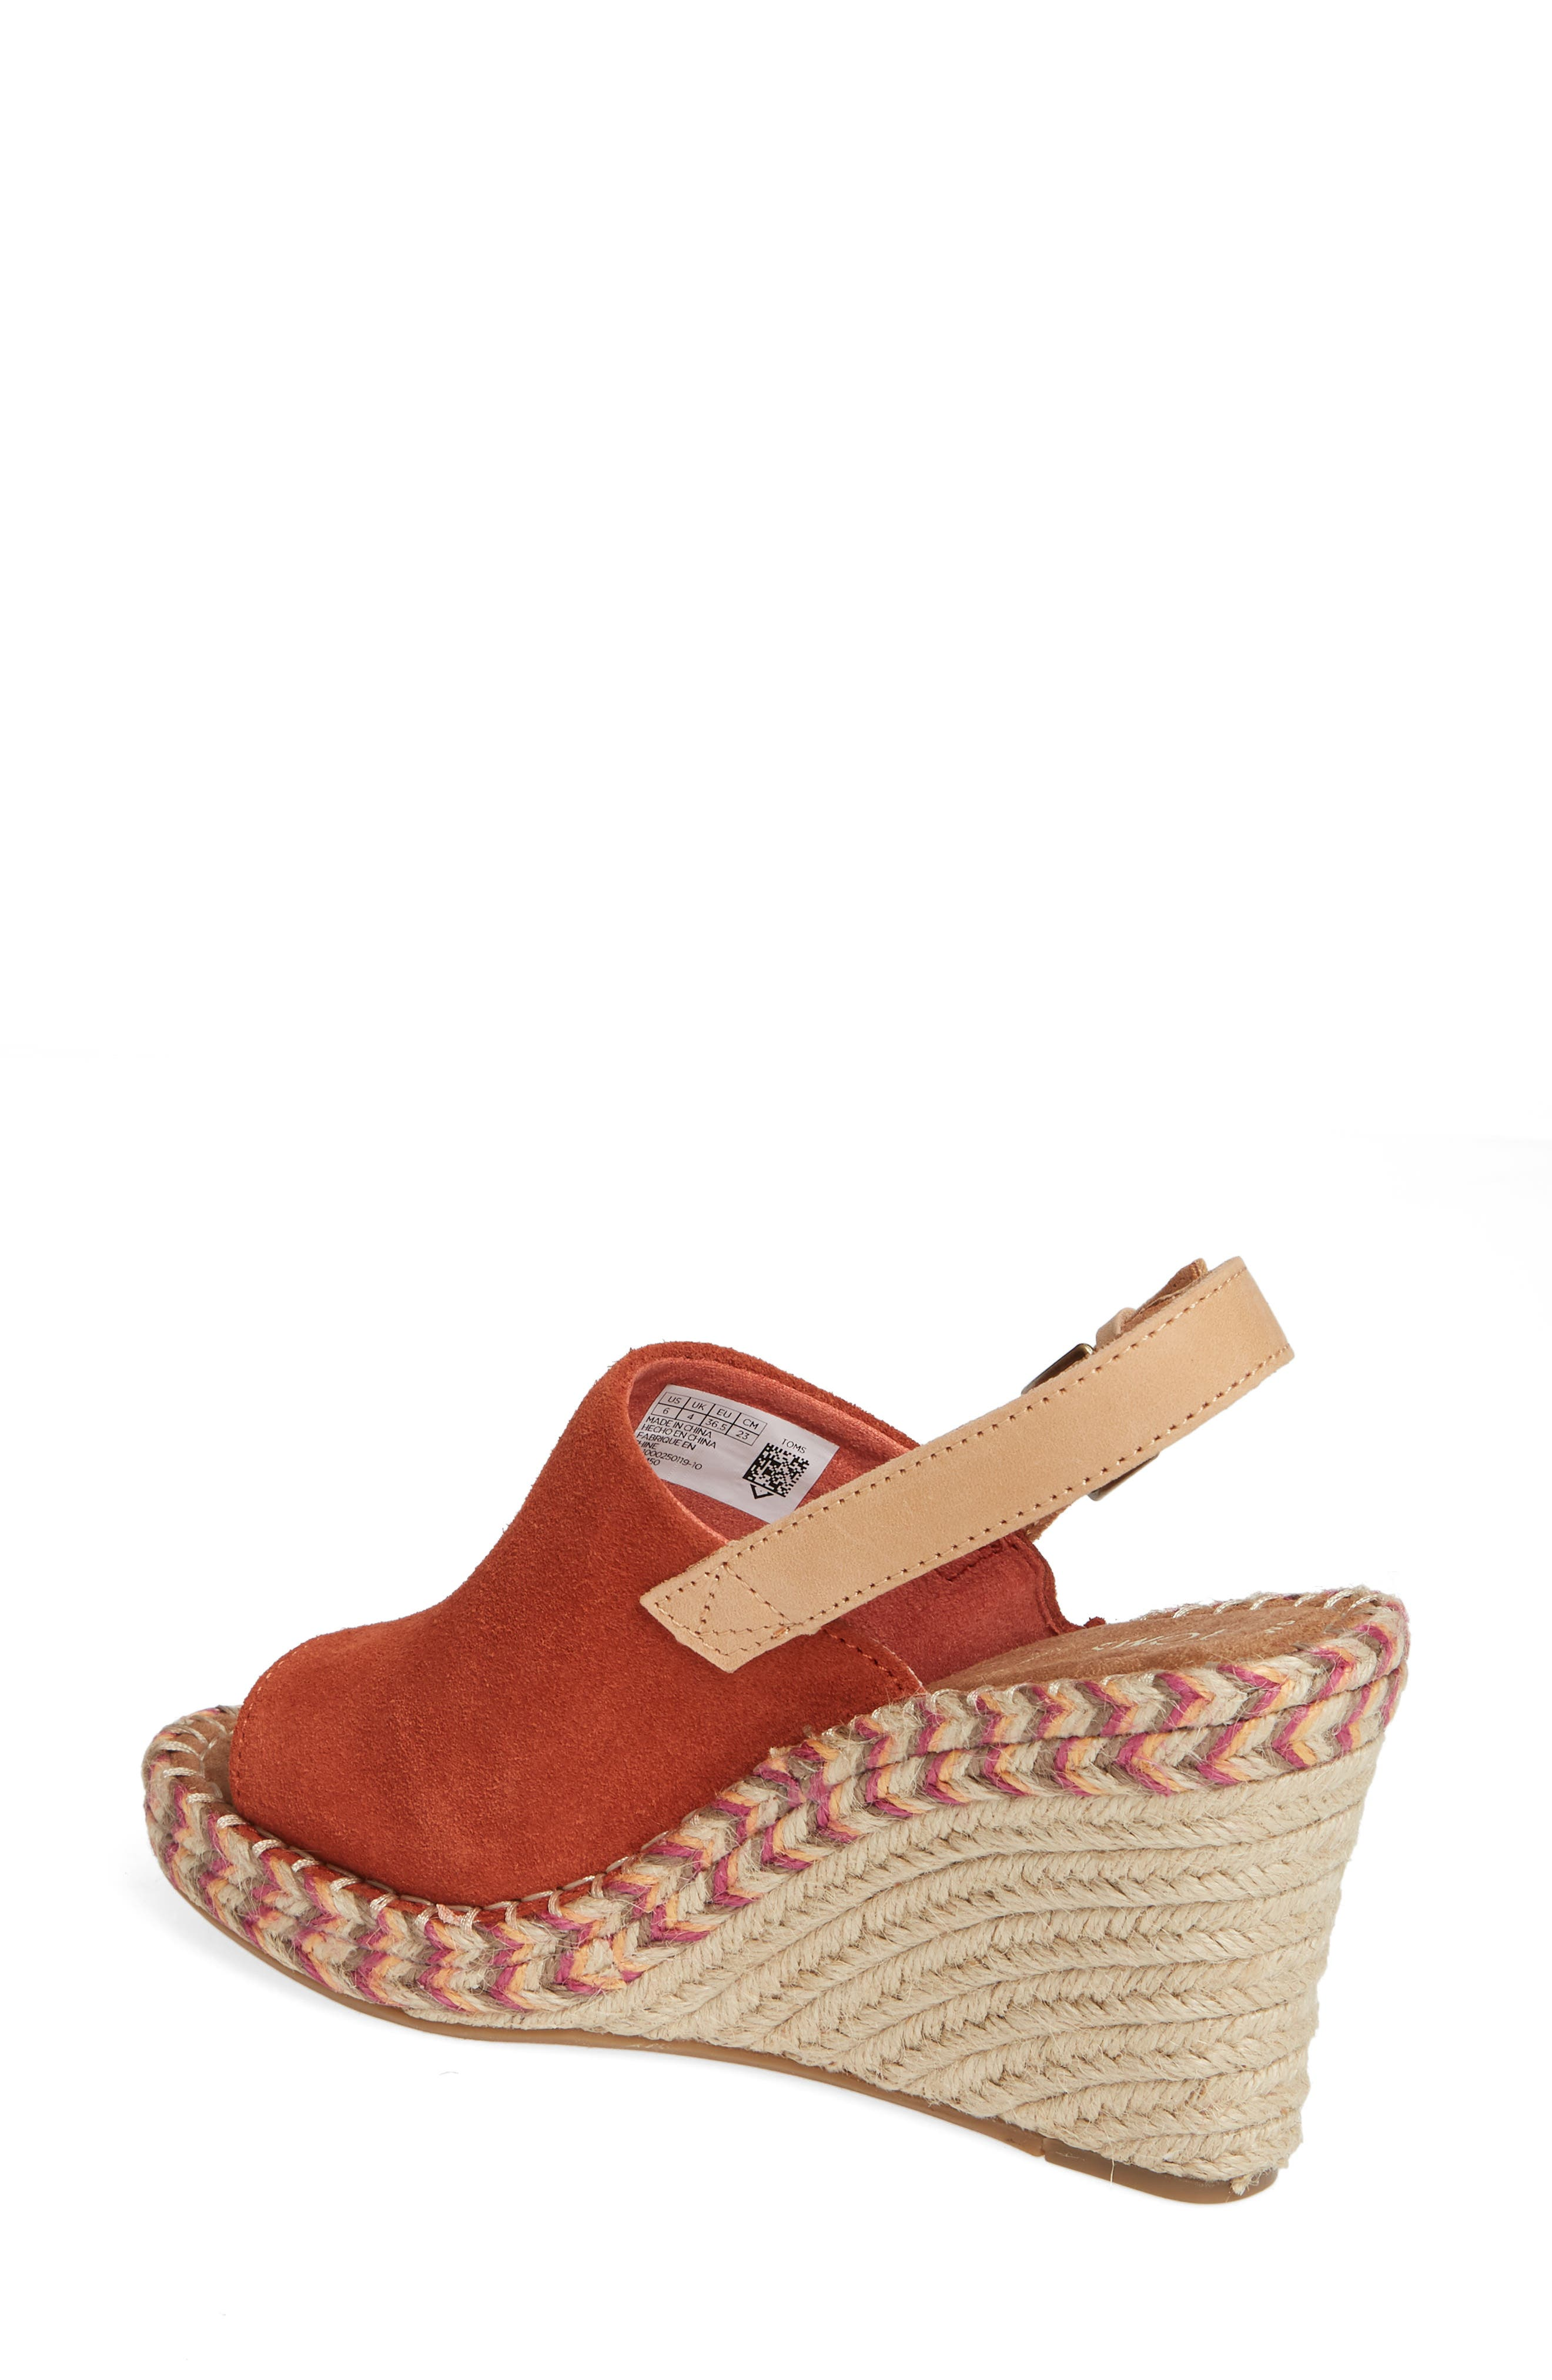 TOMS, Monica Slingback Wedge, Alternate thumbnail 2, color, SPICE SUEDE